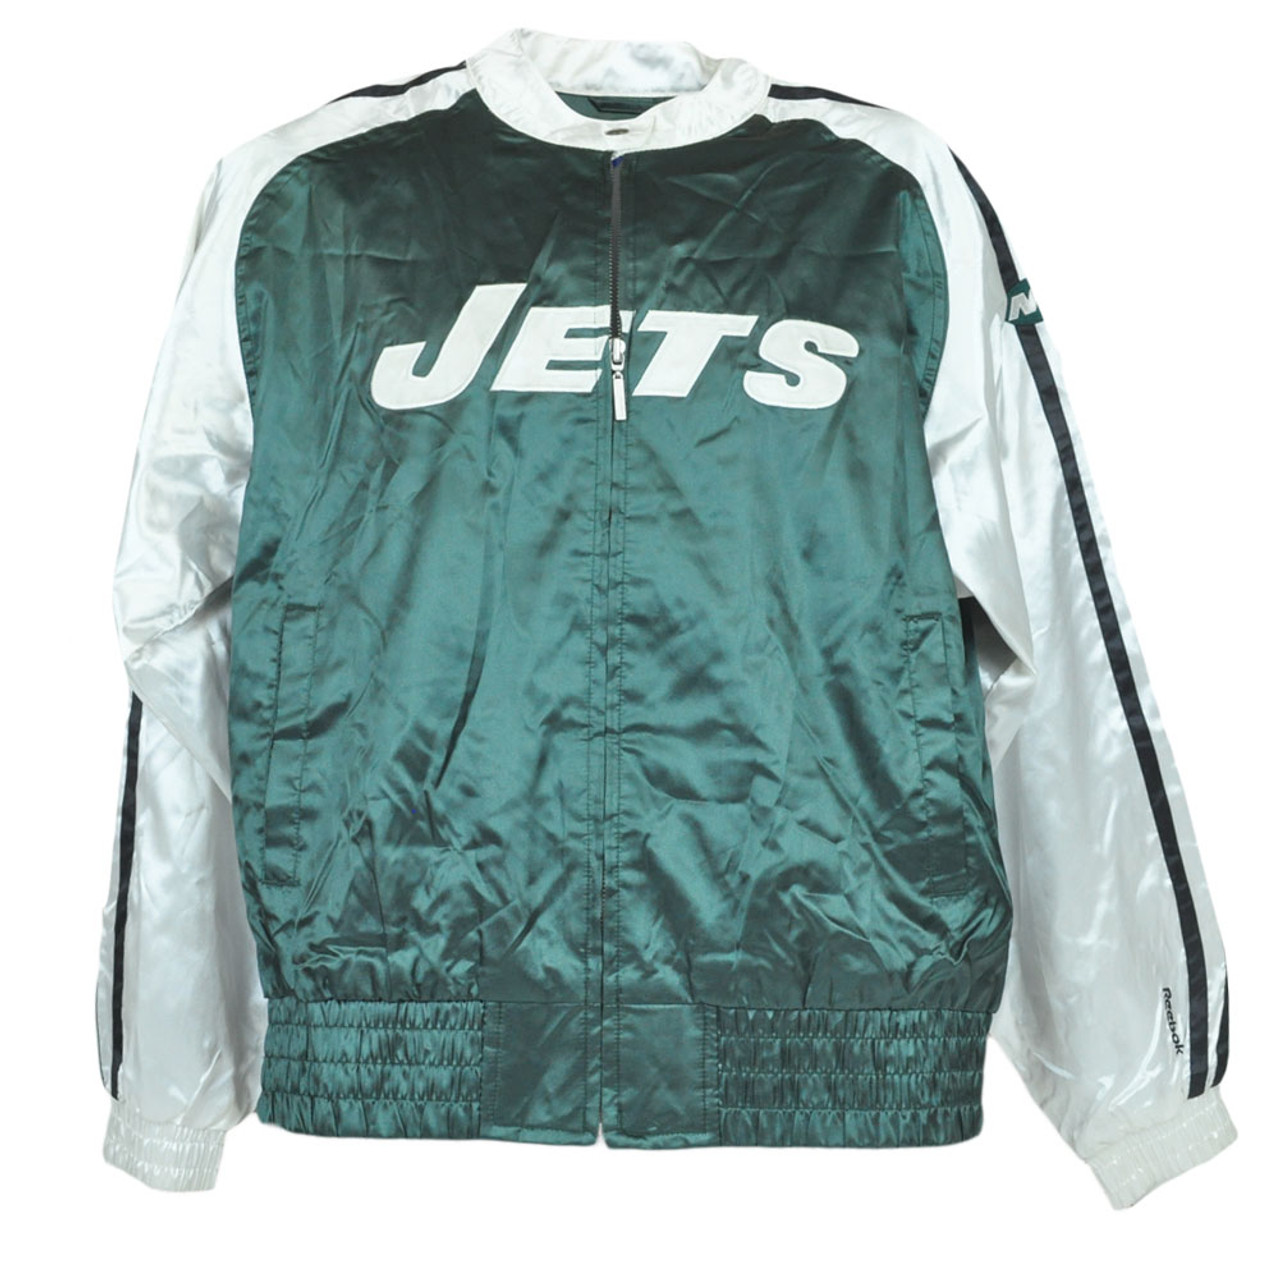 wholesale dealer 0ea5a 37d60 NFL Reebok Satin New York Jets Jacket Zipper Jersey Sweater Women Ladies